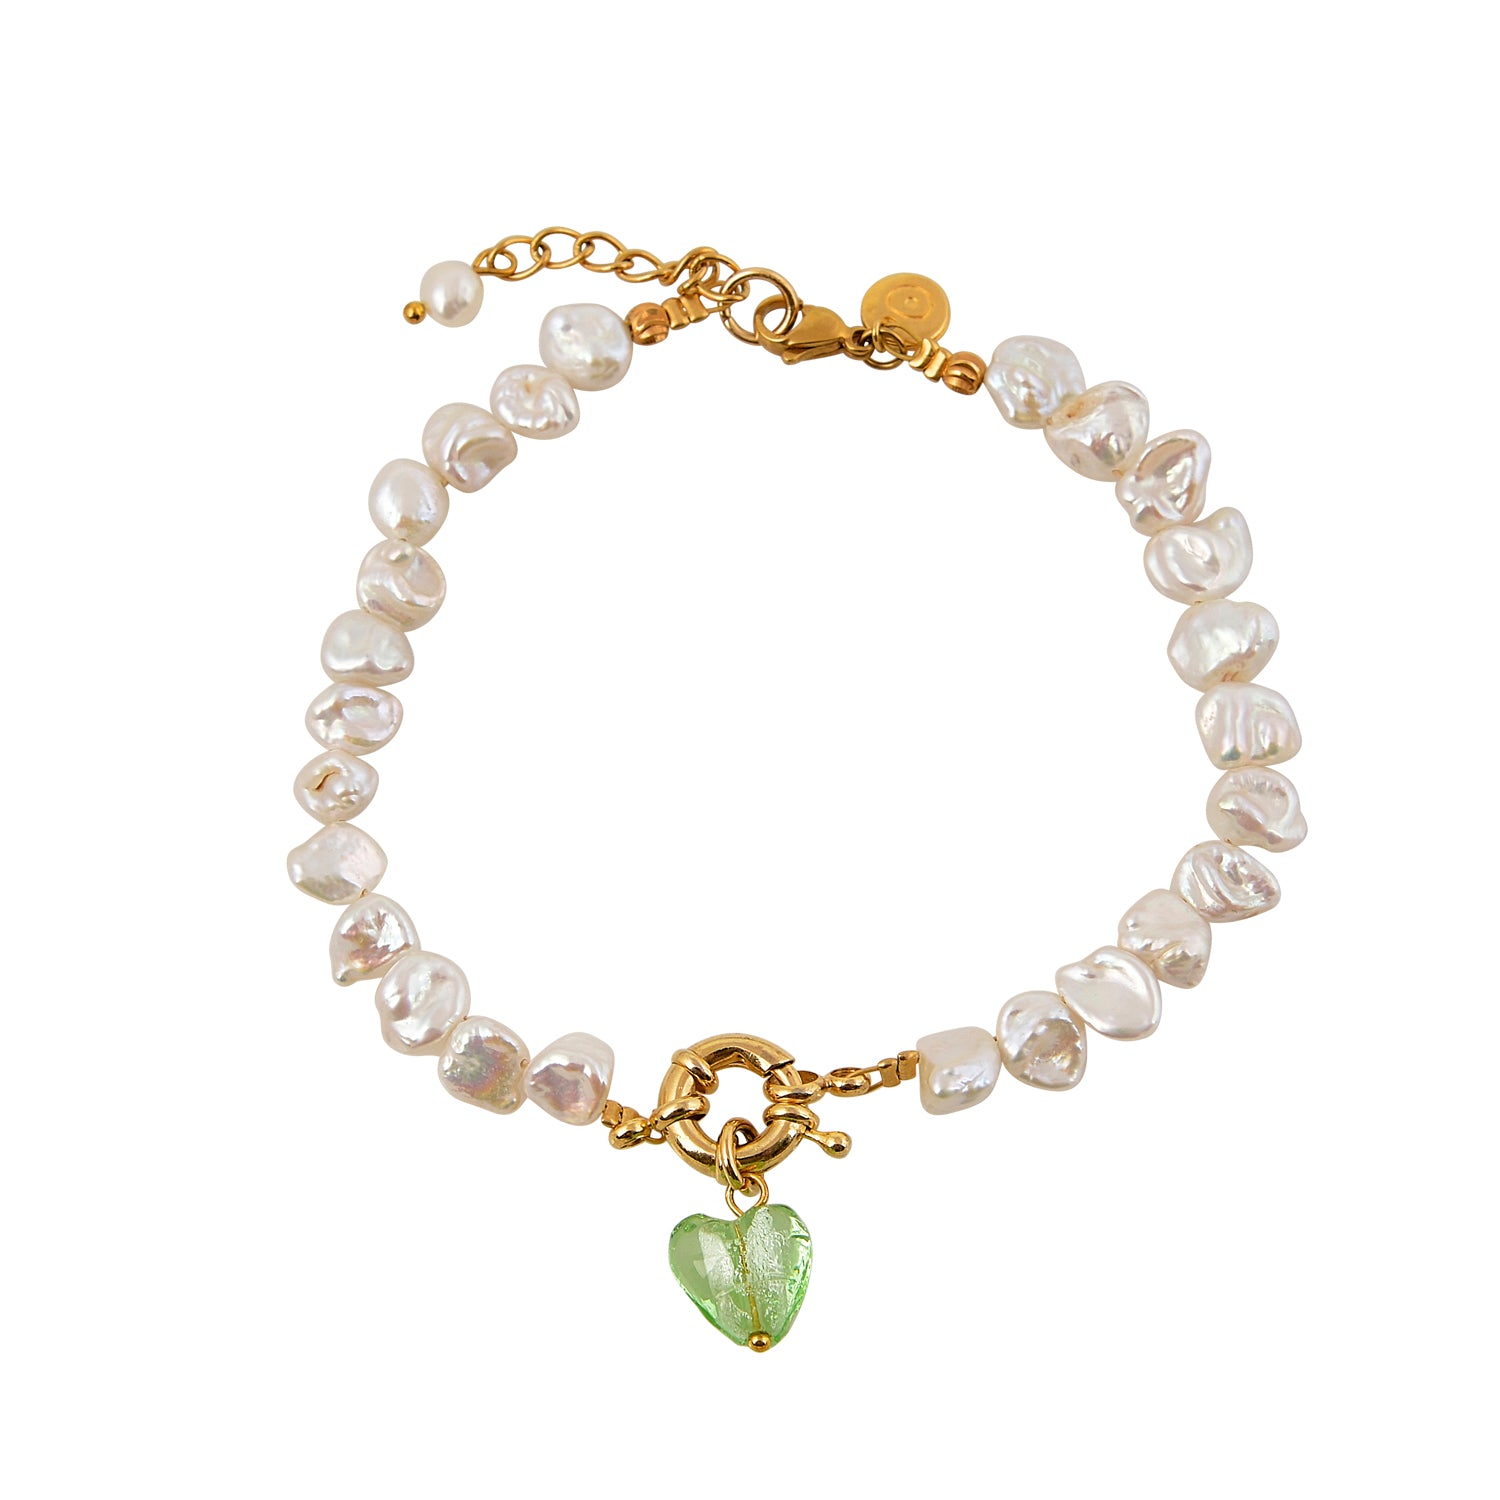 Gold anklet with irregular pearl charms and a green heart Murano drop pendant